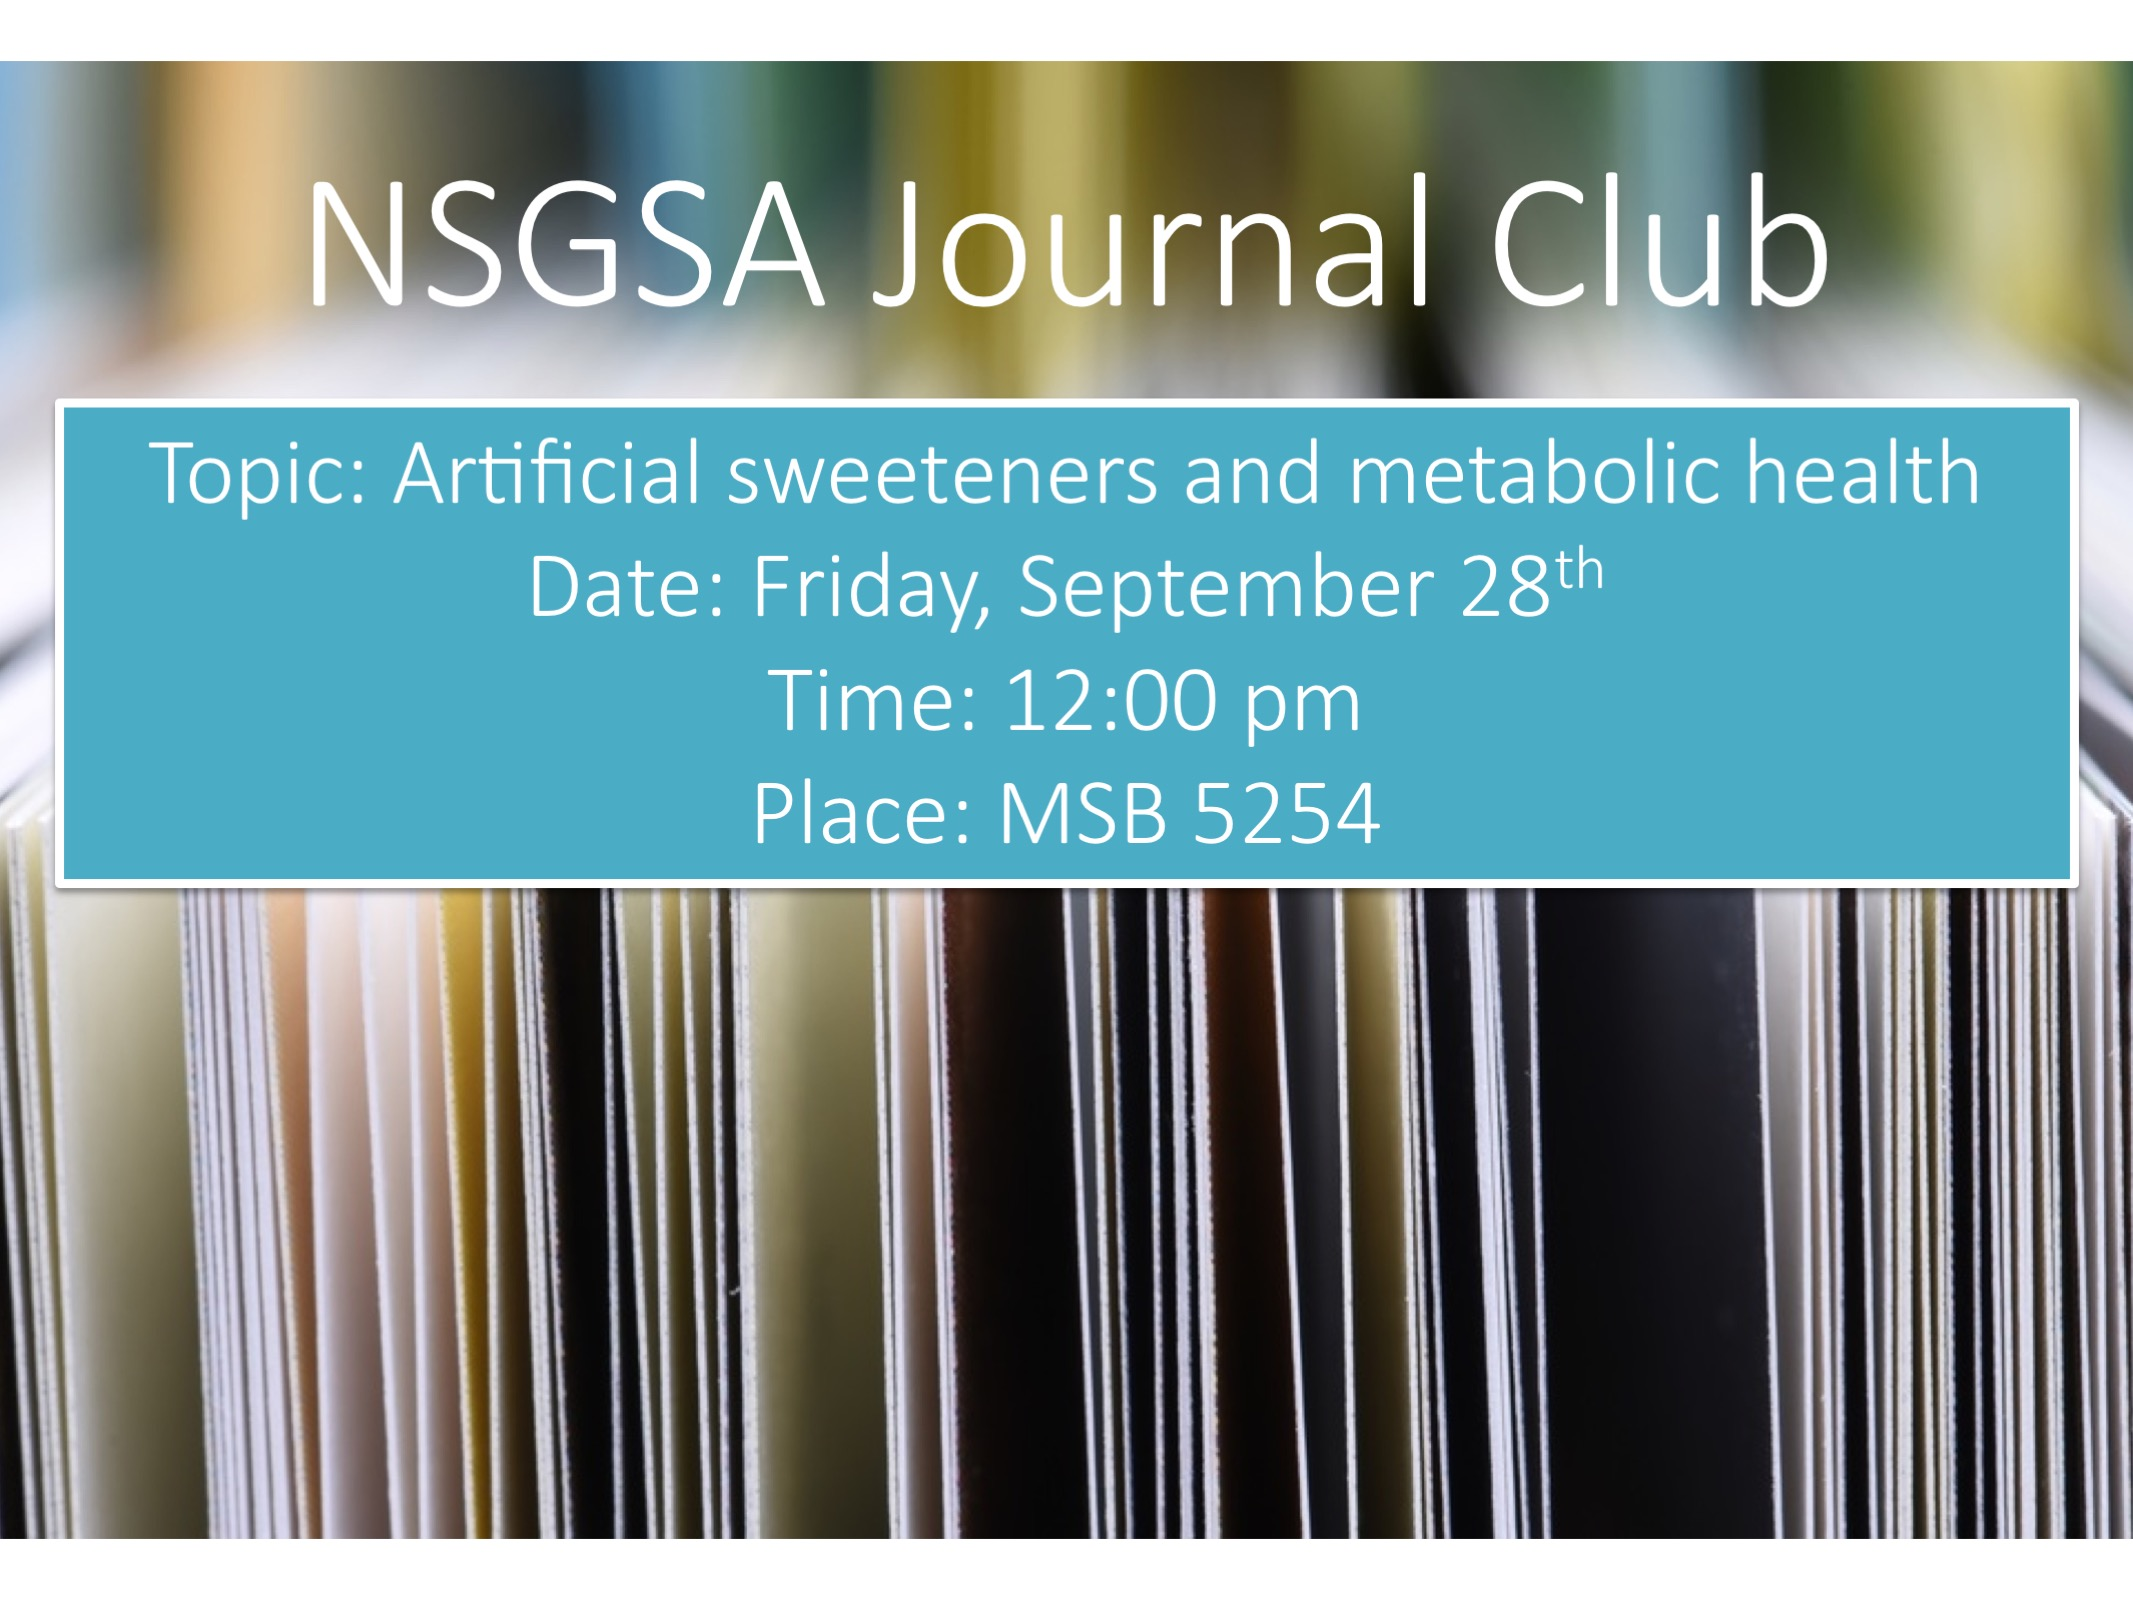 Journal club ad